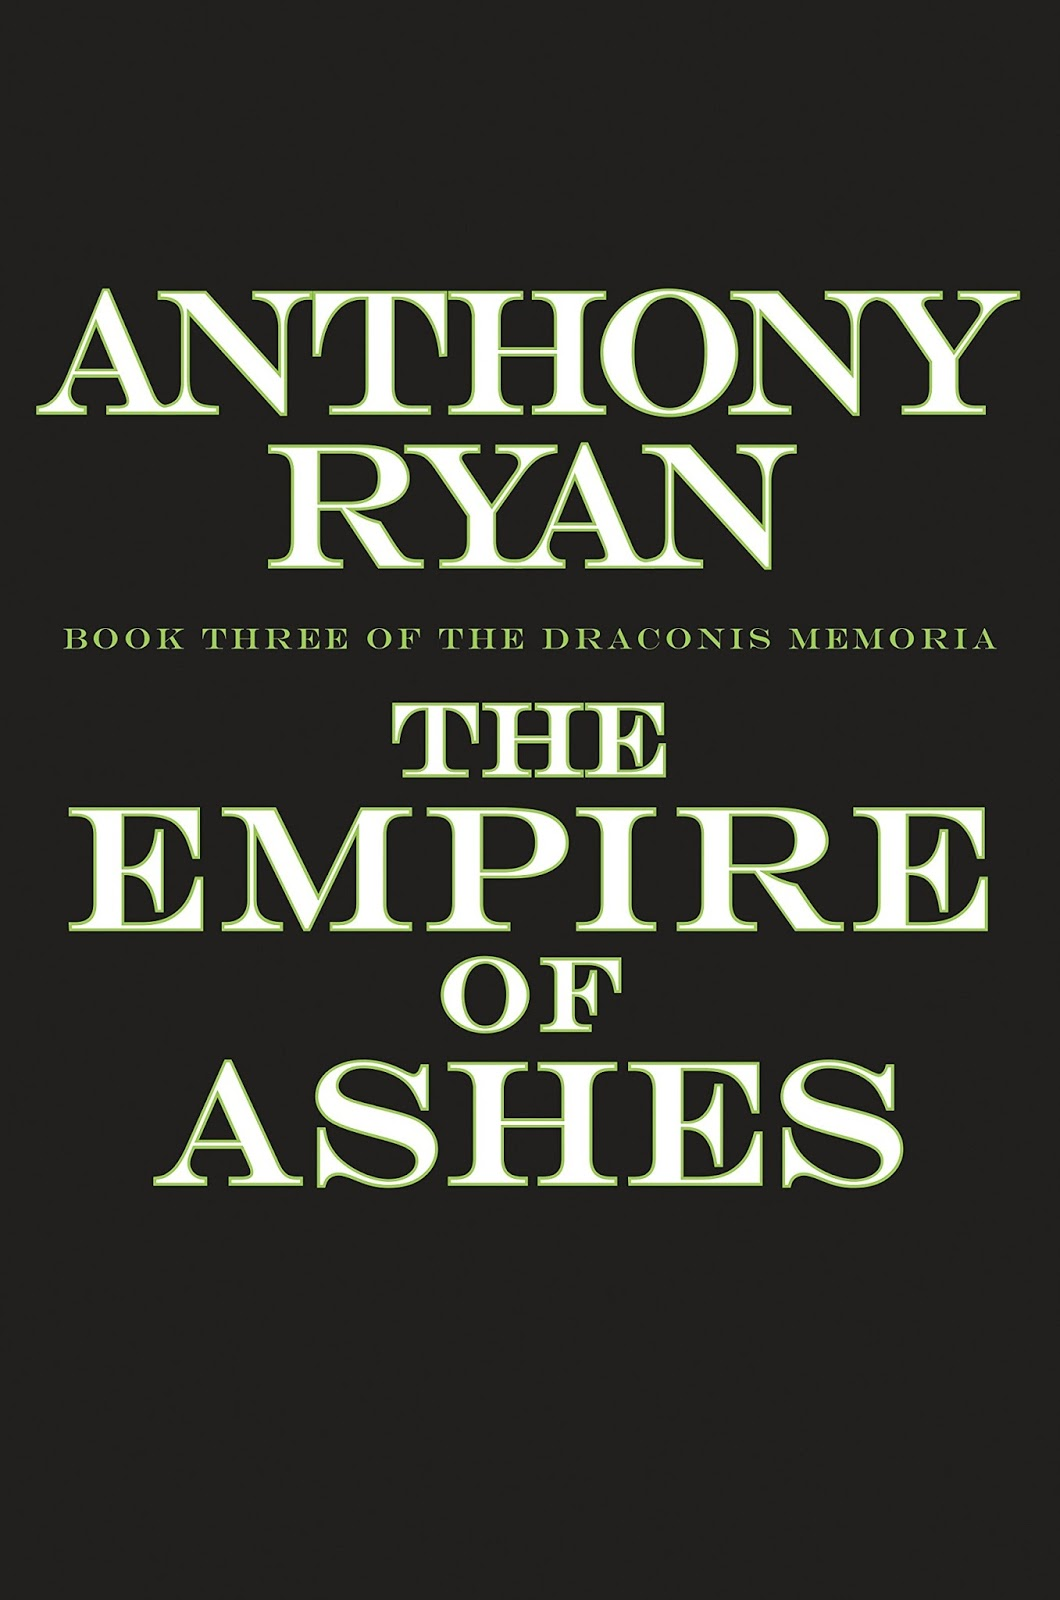 The Empire of Ashes by Anthony Ryan